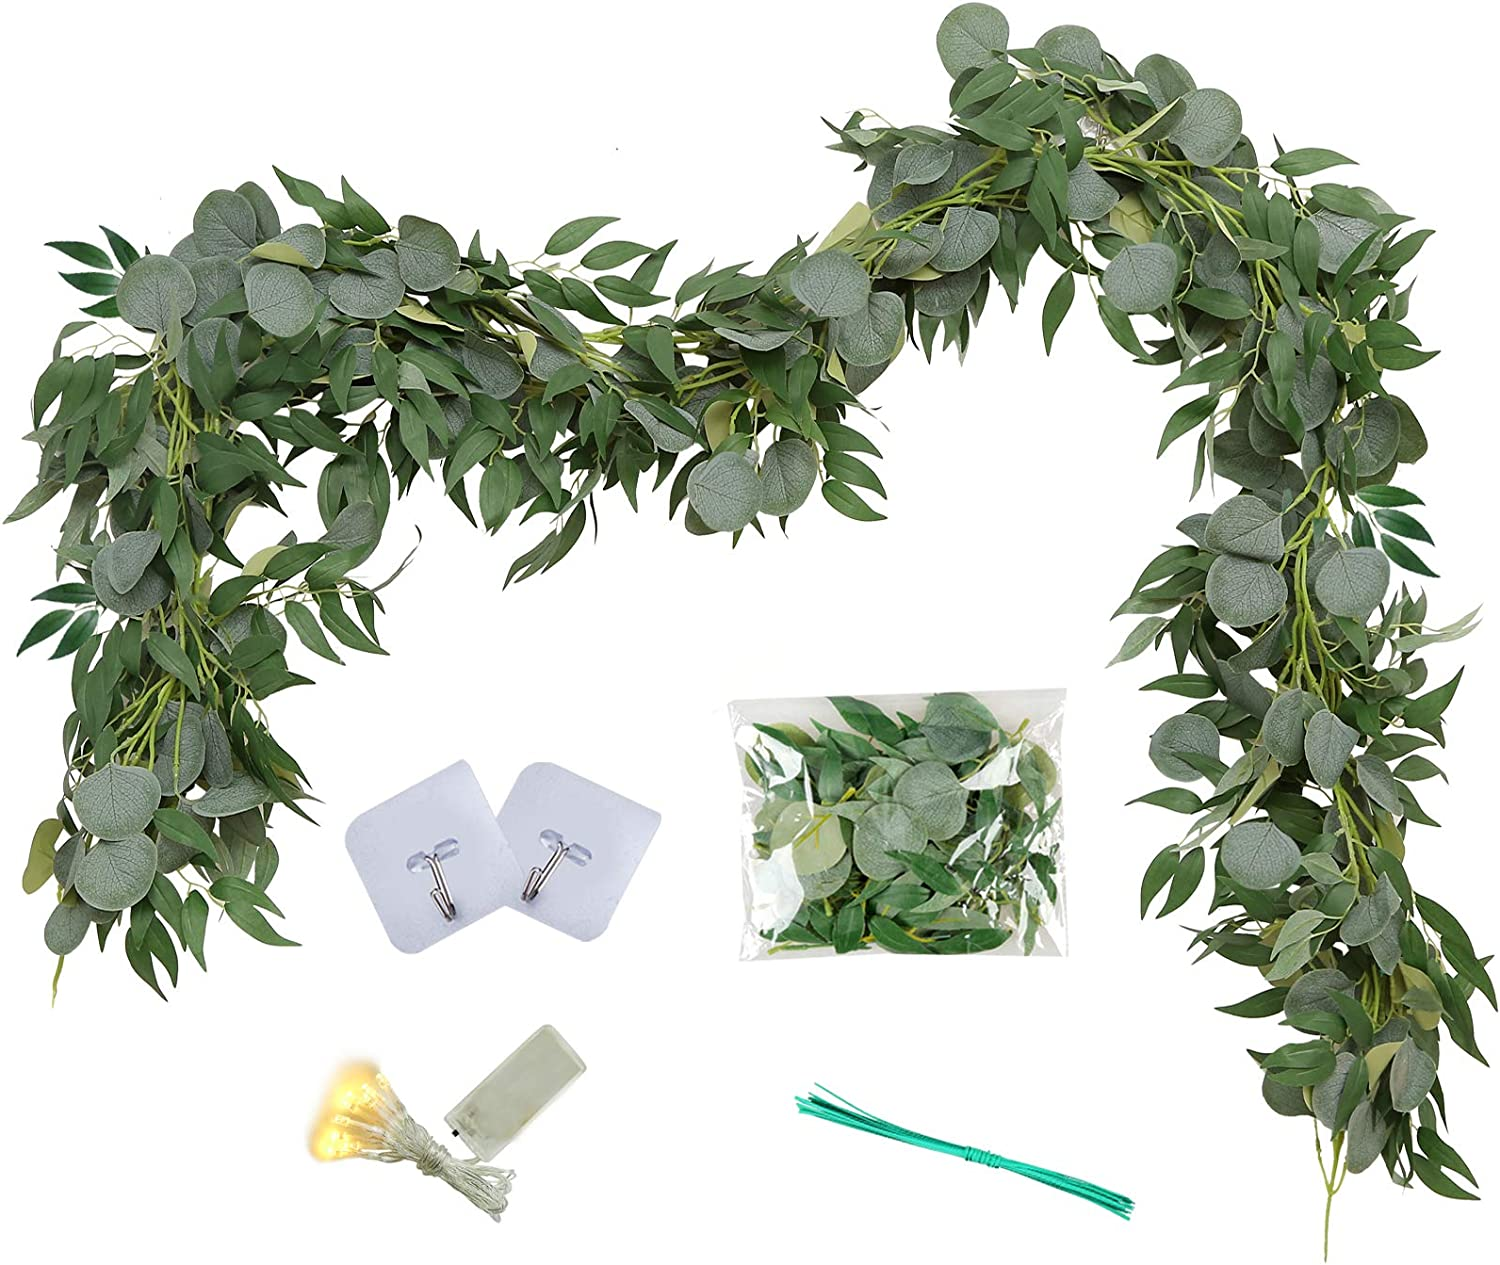 Greentime 2 Pack 6.5 Feet Artificial Silver Dollar Eucalyptus Leaves Garland with Willow Vines Leaves Greenery Garland for Wedding Table Runner Centerpiece Arch Bridal Baby Shower Decor